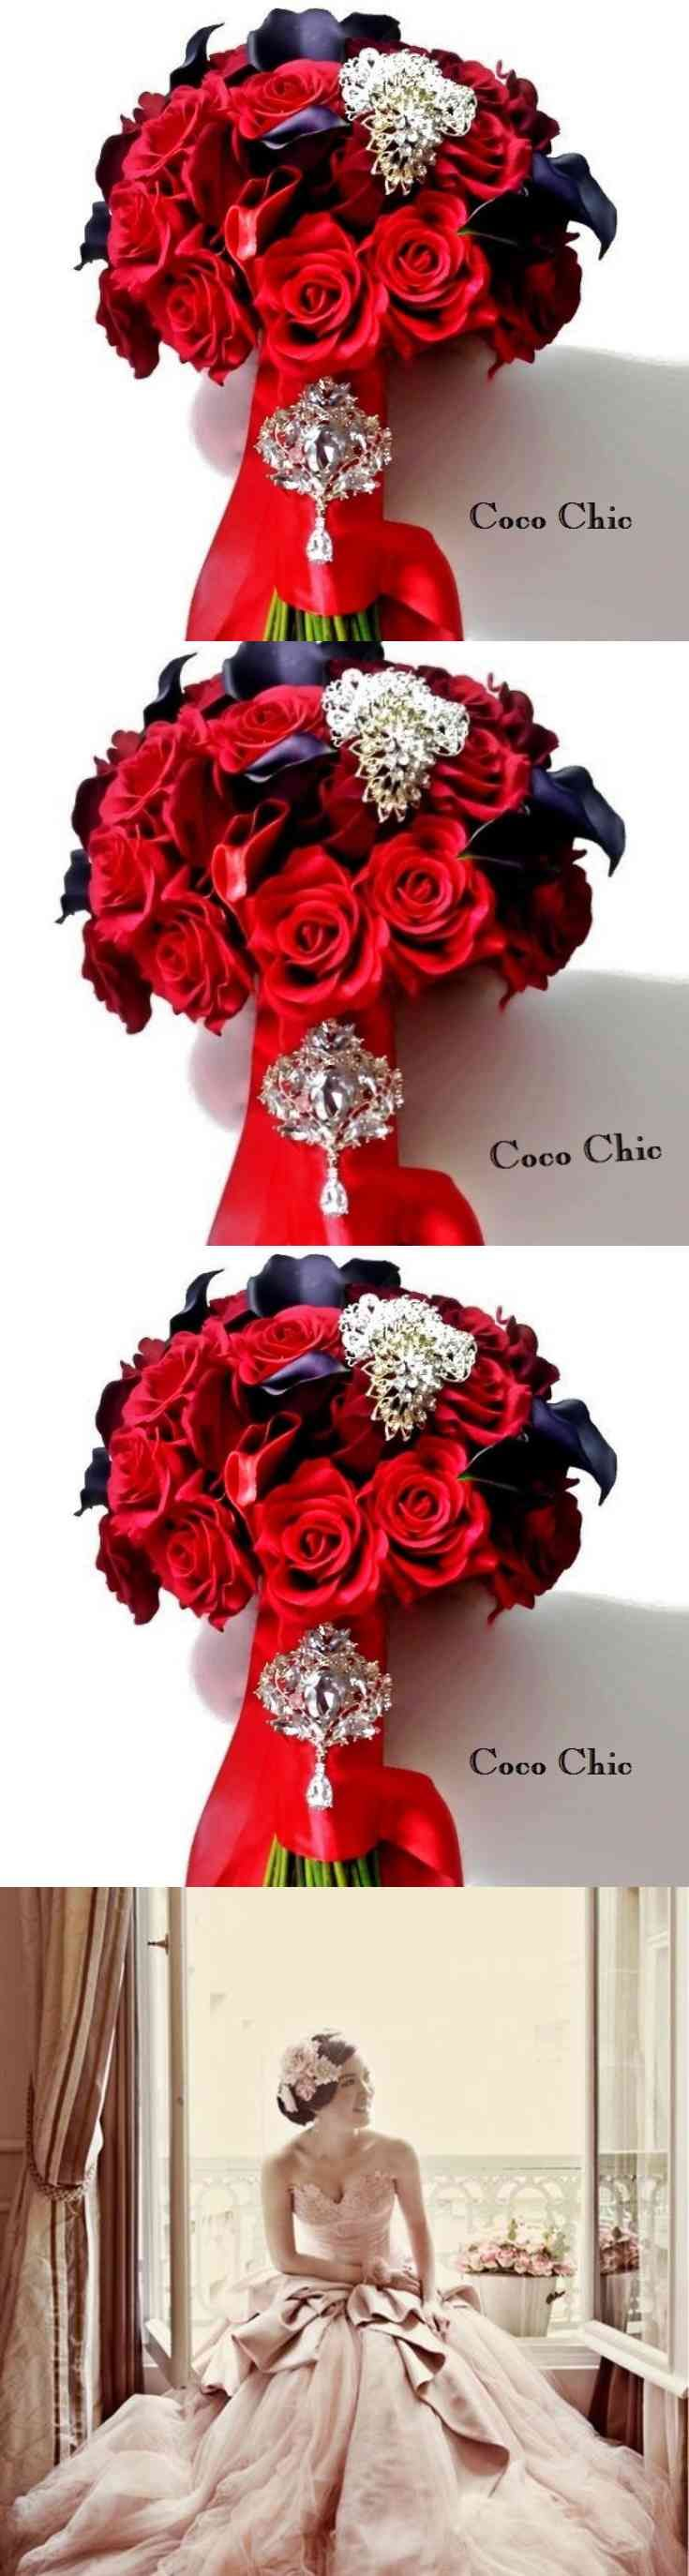 Red Roses Bridal Bouquet, Coco Chic Wedding Bouquet (via pushapin.com)